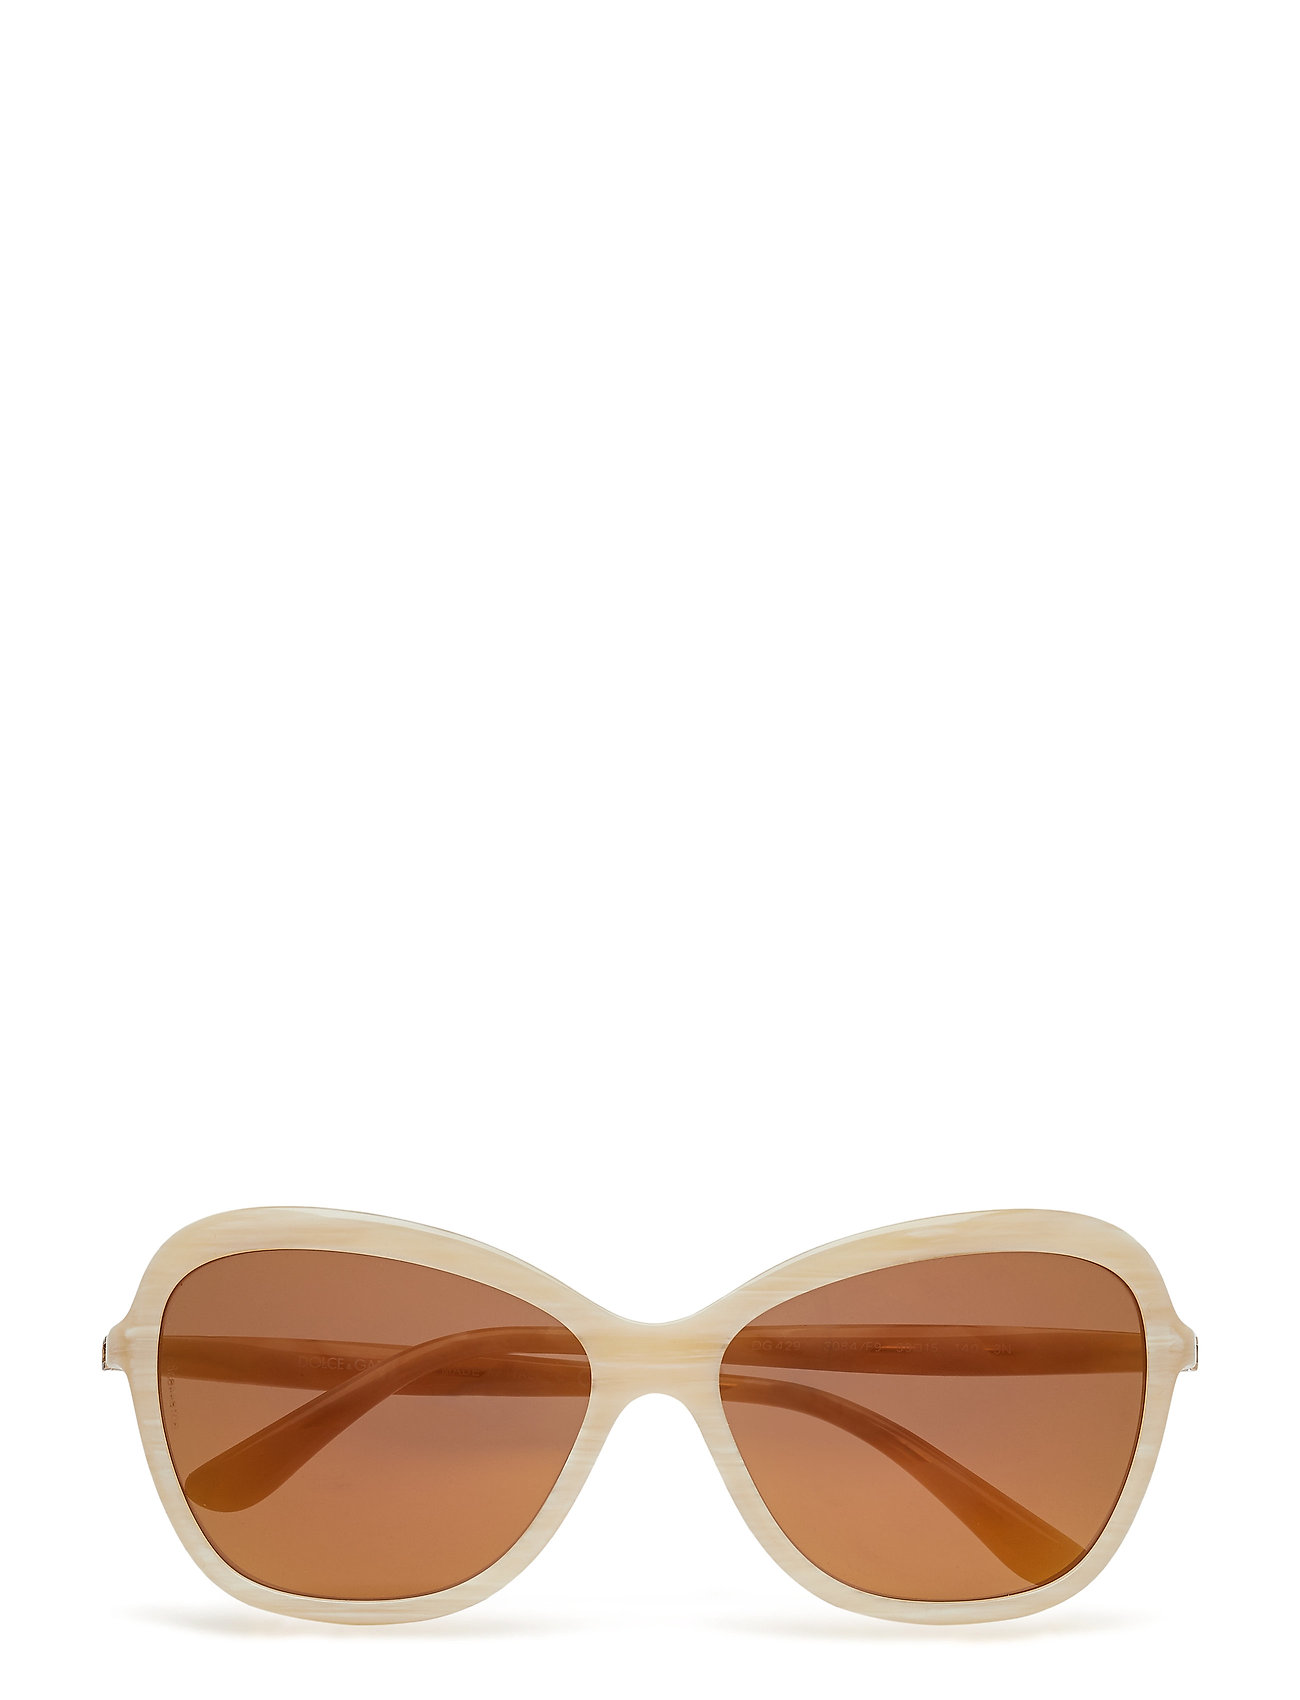 Cat Eye Sonnenbrille Beige DOLCE & GABBANA SUNGLASSES